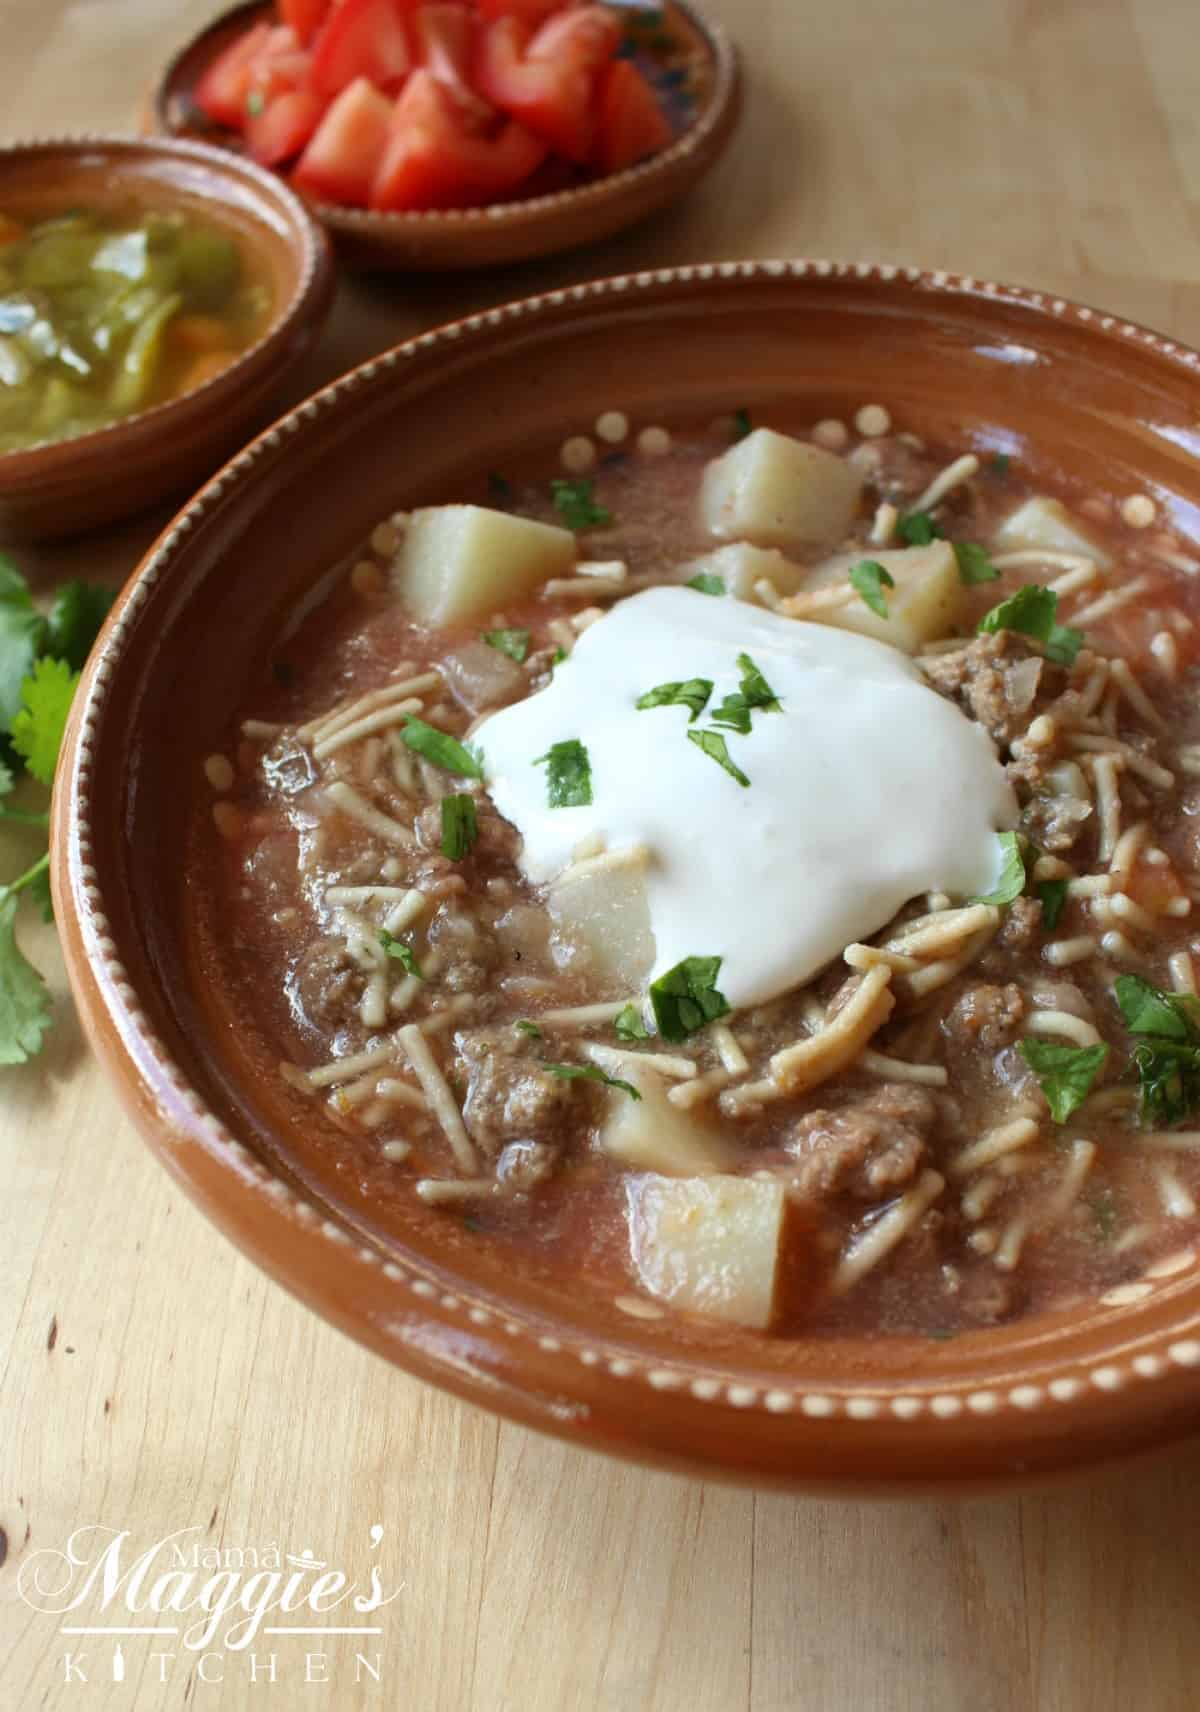 Fideo con Carne in a clay bowl topped with sour cream and chopped cilantro.